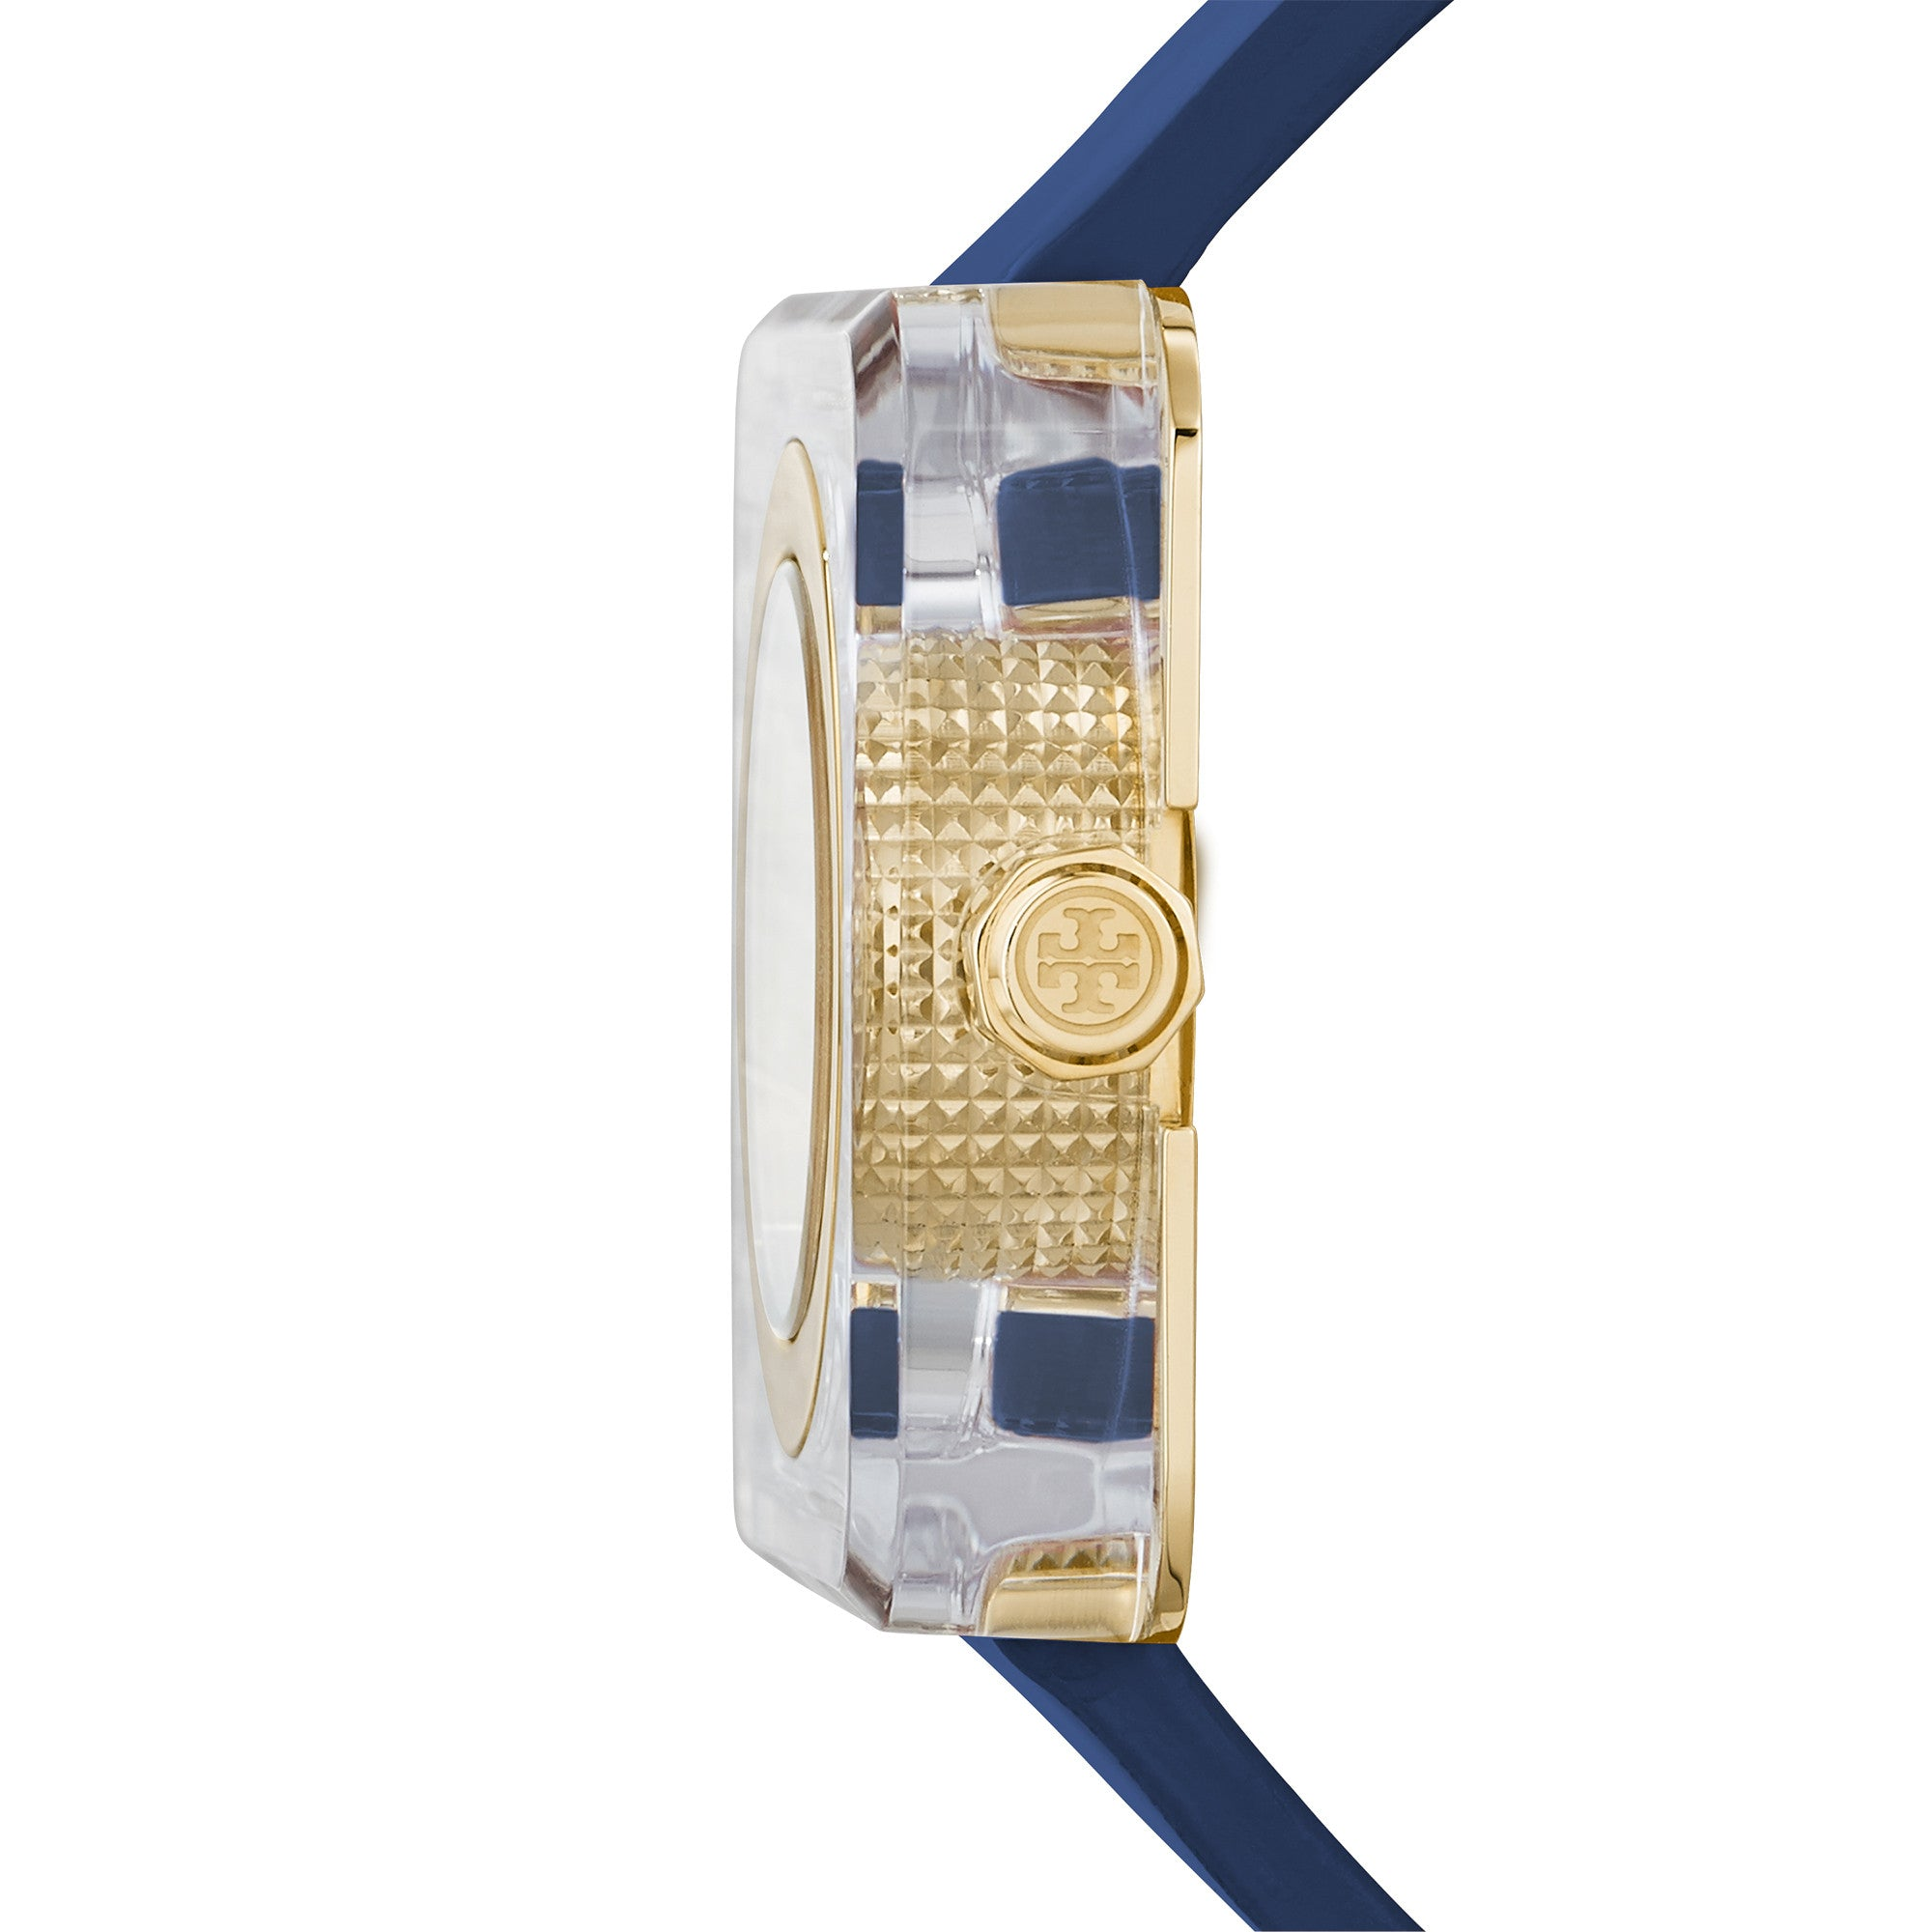 IZZIE WATCH, NAVY PATENT/GOLD, 36 X 36 MM